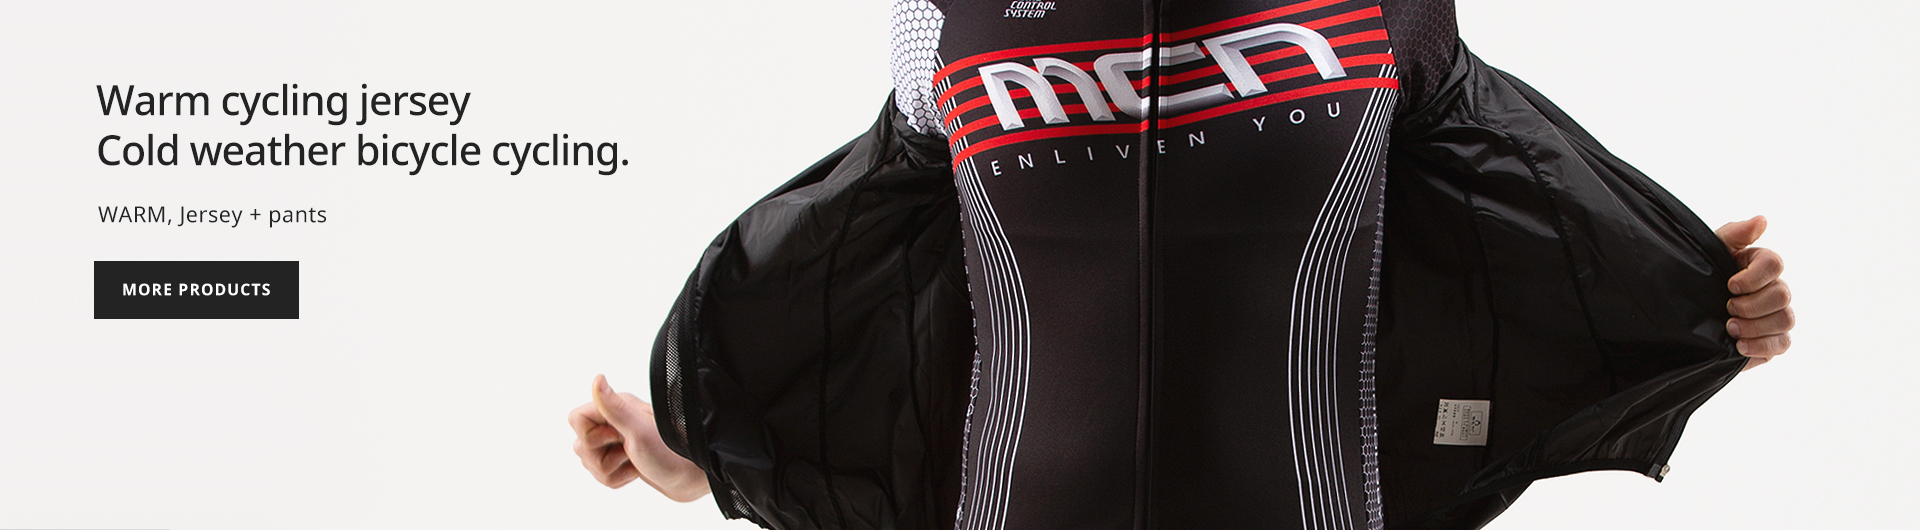 Warm cycling jersey Cold weather bicycle cycling.